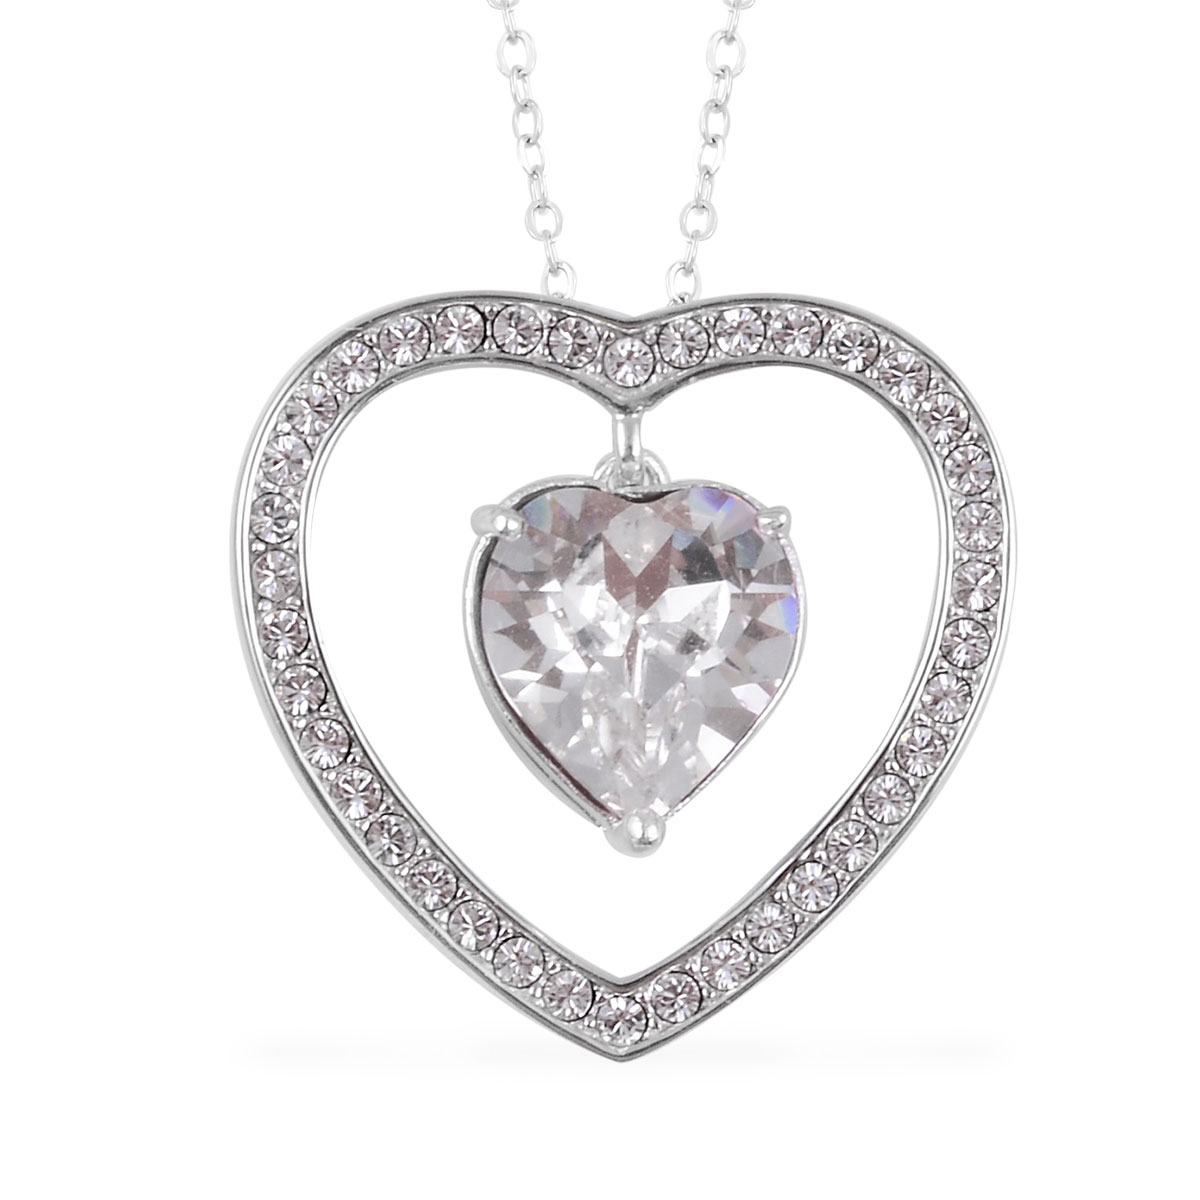 a10f1cb816 From the Heart White SWAROVSKI Crystal Heart Pendant Necklace in 14K RG  Over Sterling Silver (18 in)